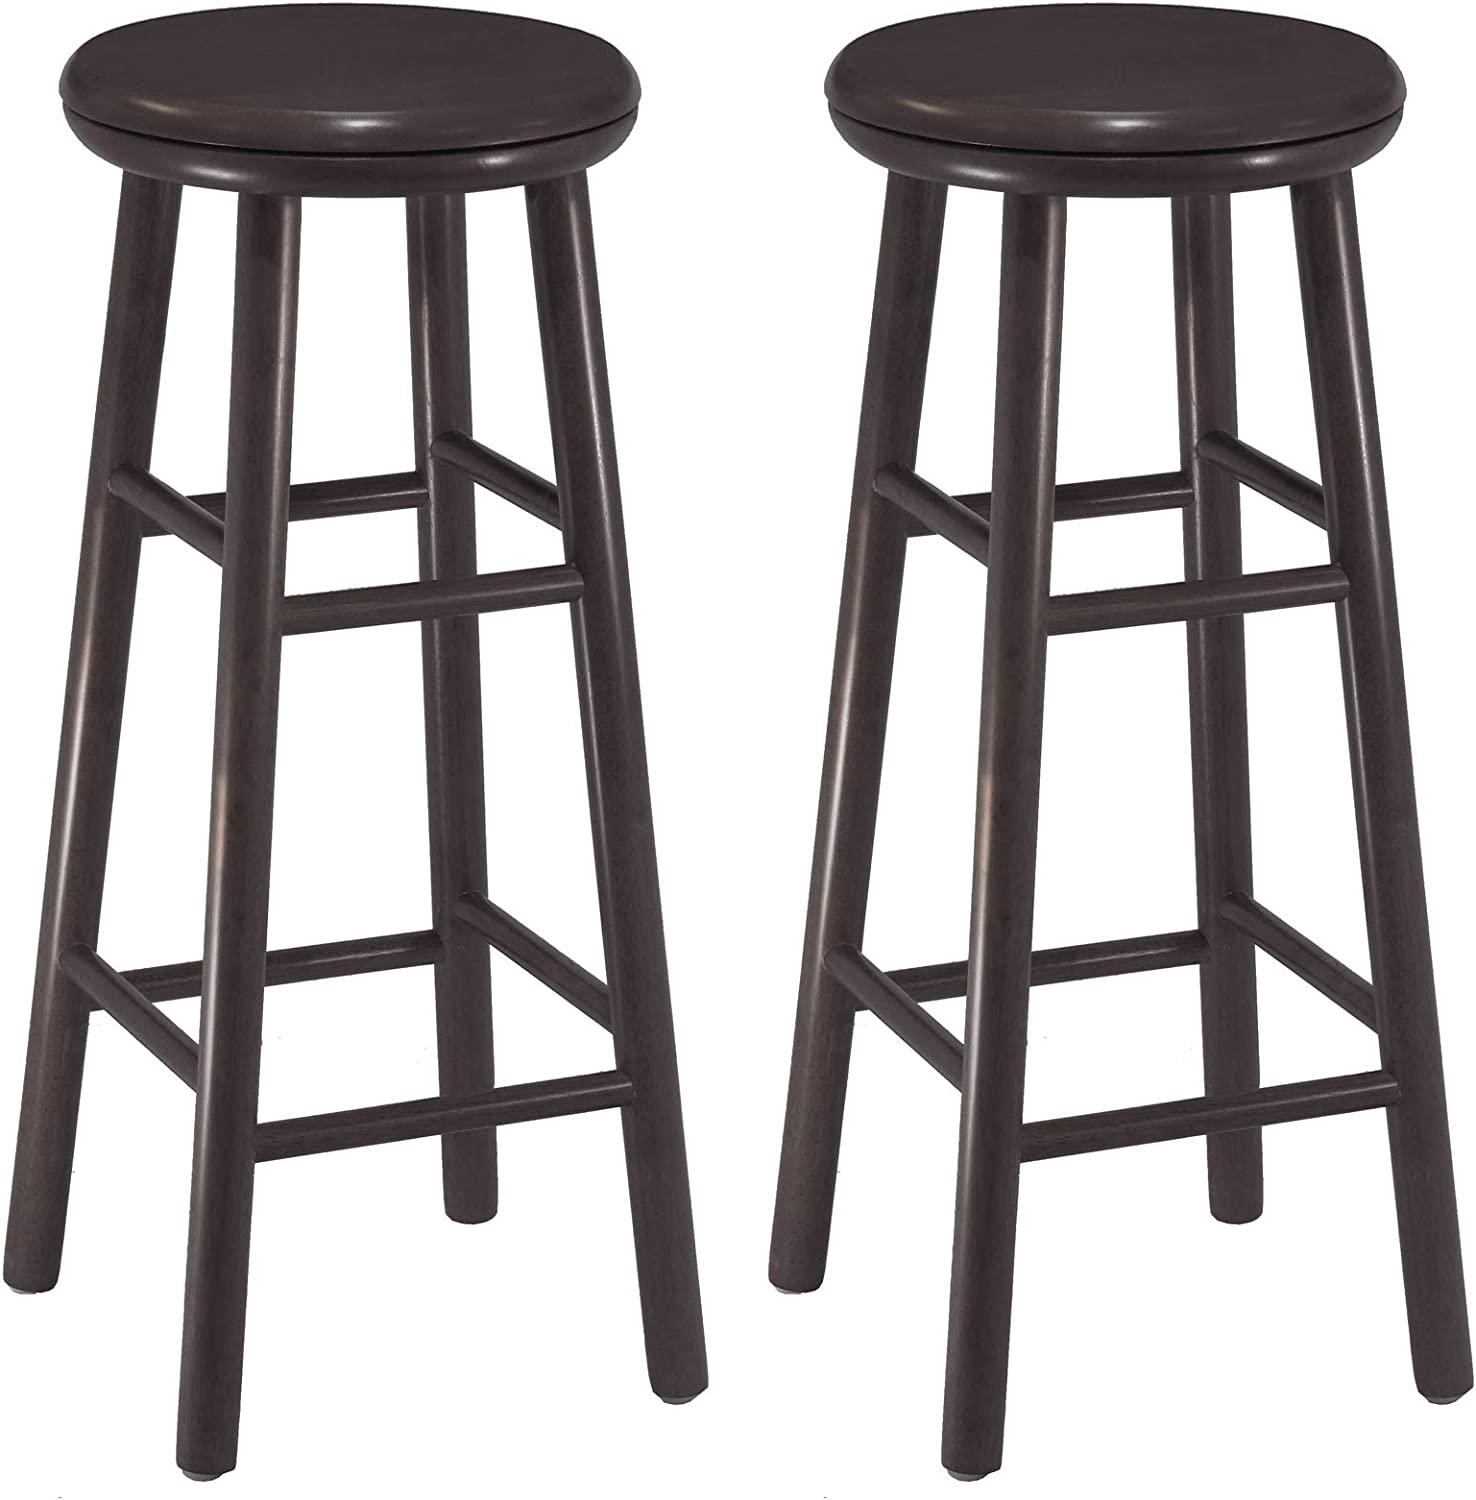 Amazon Com Winsome Wood Oakley Swivel Seat Bar Stools 2 Pc Espresso Finish 30 94 Furniture Decor